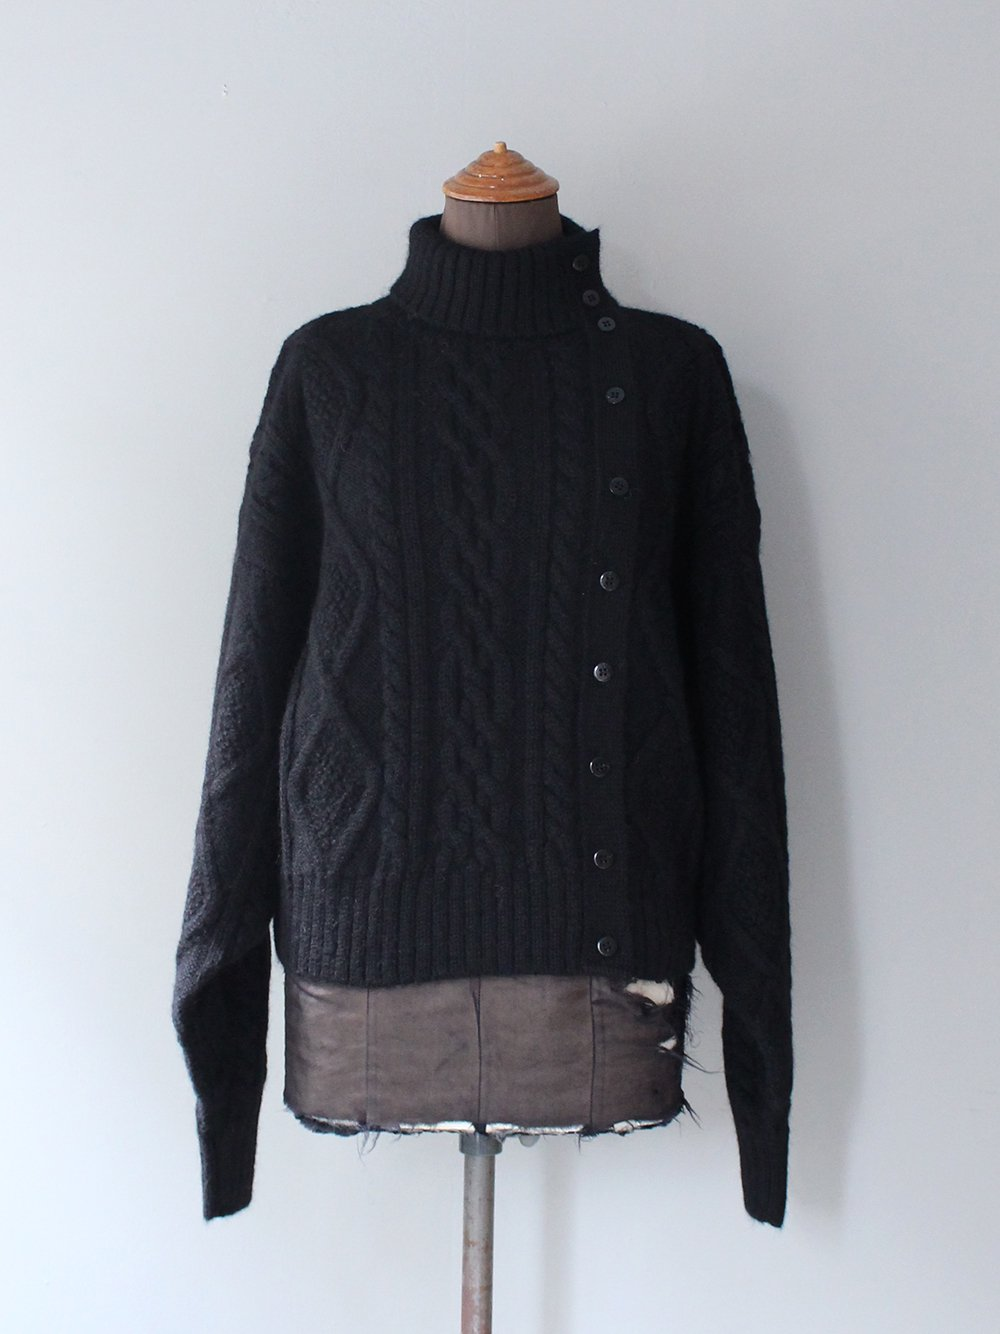 """<img class='new_mark_img1' src='https://img.shop-pro.jp/img/new/icons8.gif' style='border:none;display:inline;margin:0px;padding:0px;width:auto;' />WRYHT """" FISHERMAN BUTTONED SWEATER (BLACK) """""""